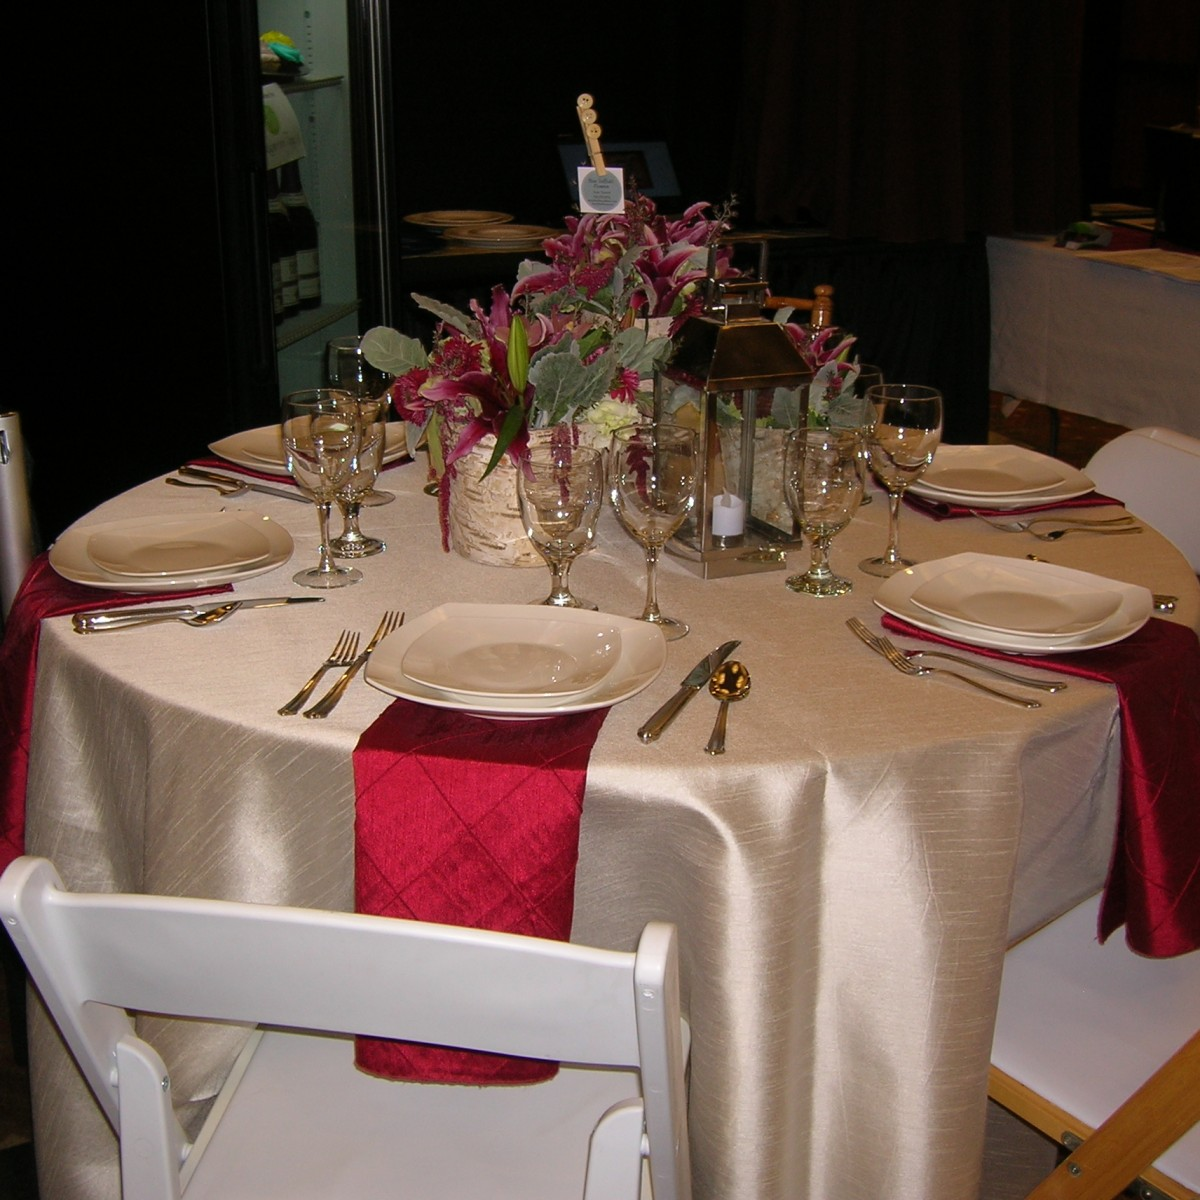 wedding linens wedding linens Call Us At For More Details wedding party reception table linens